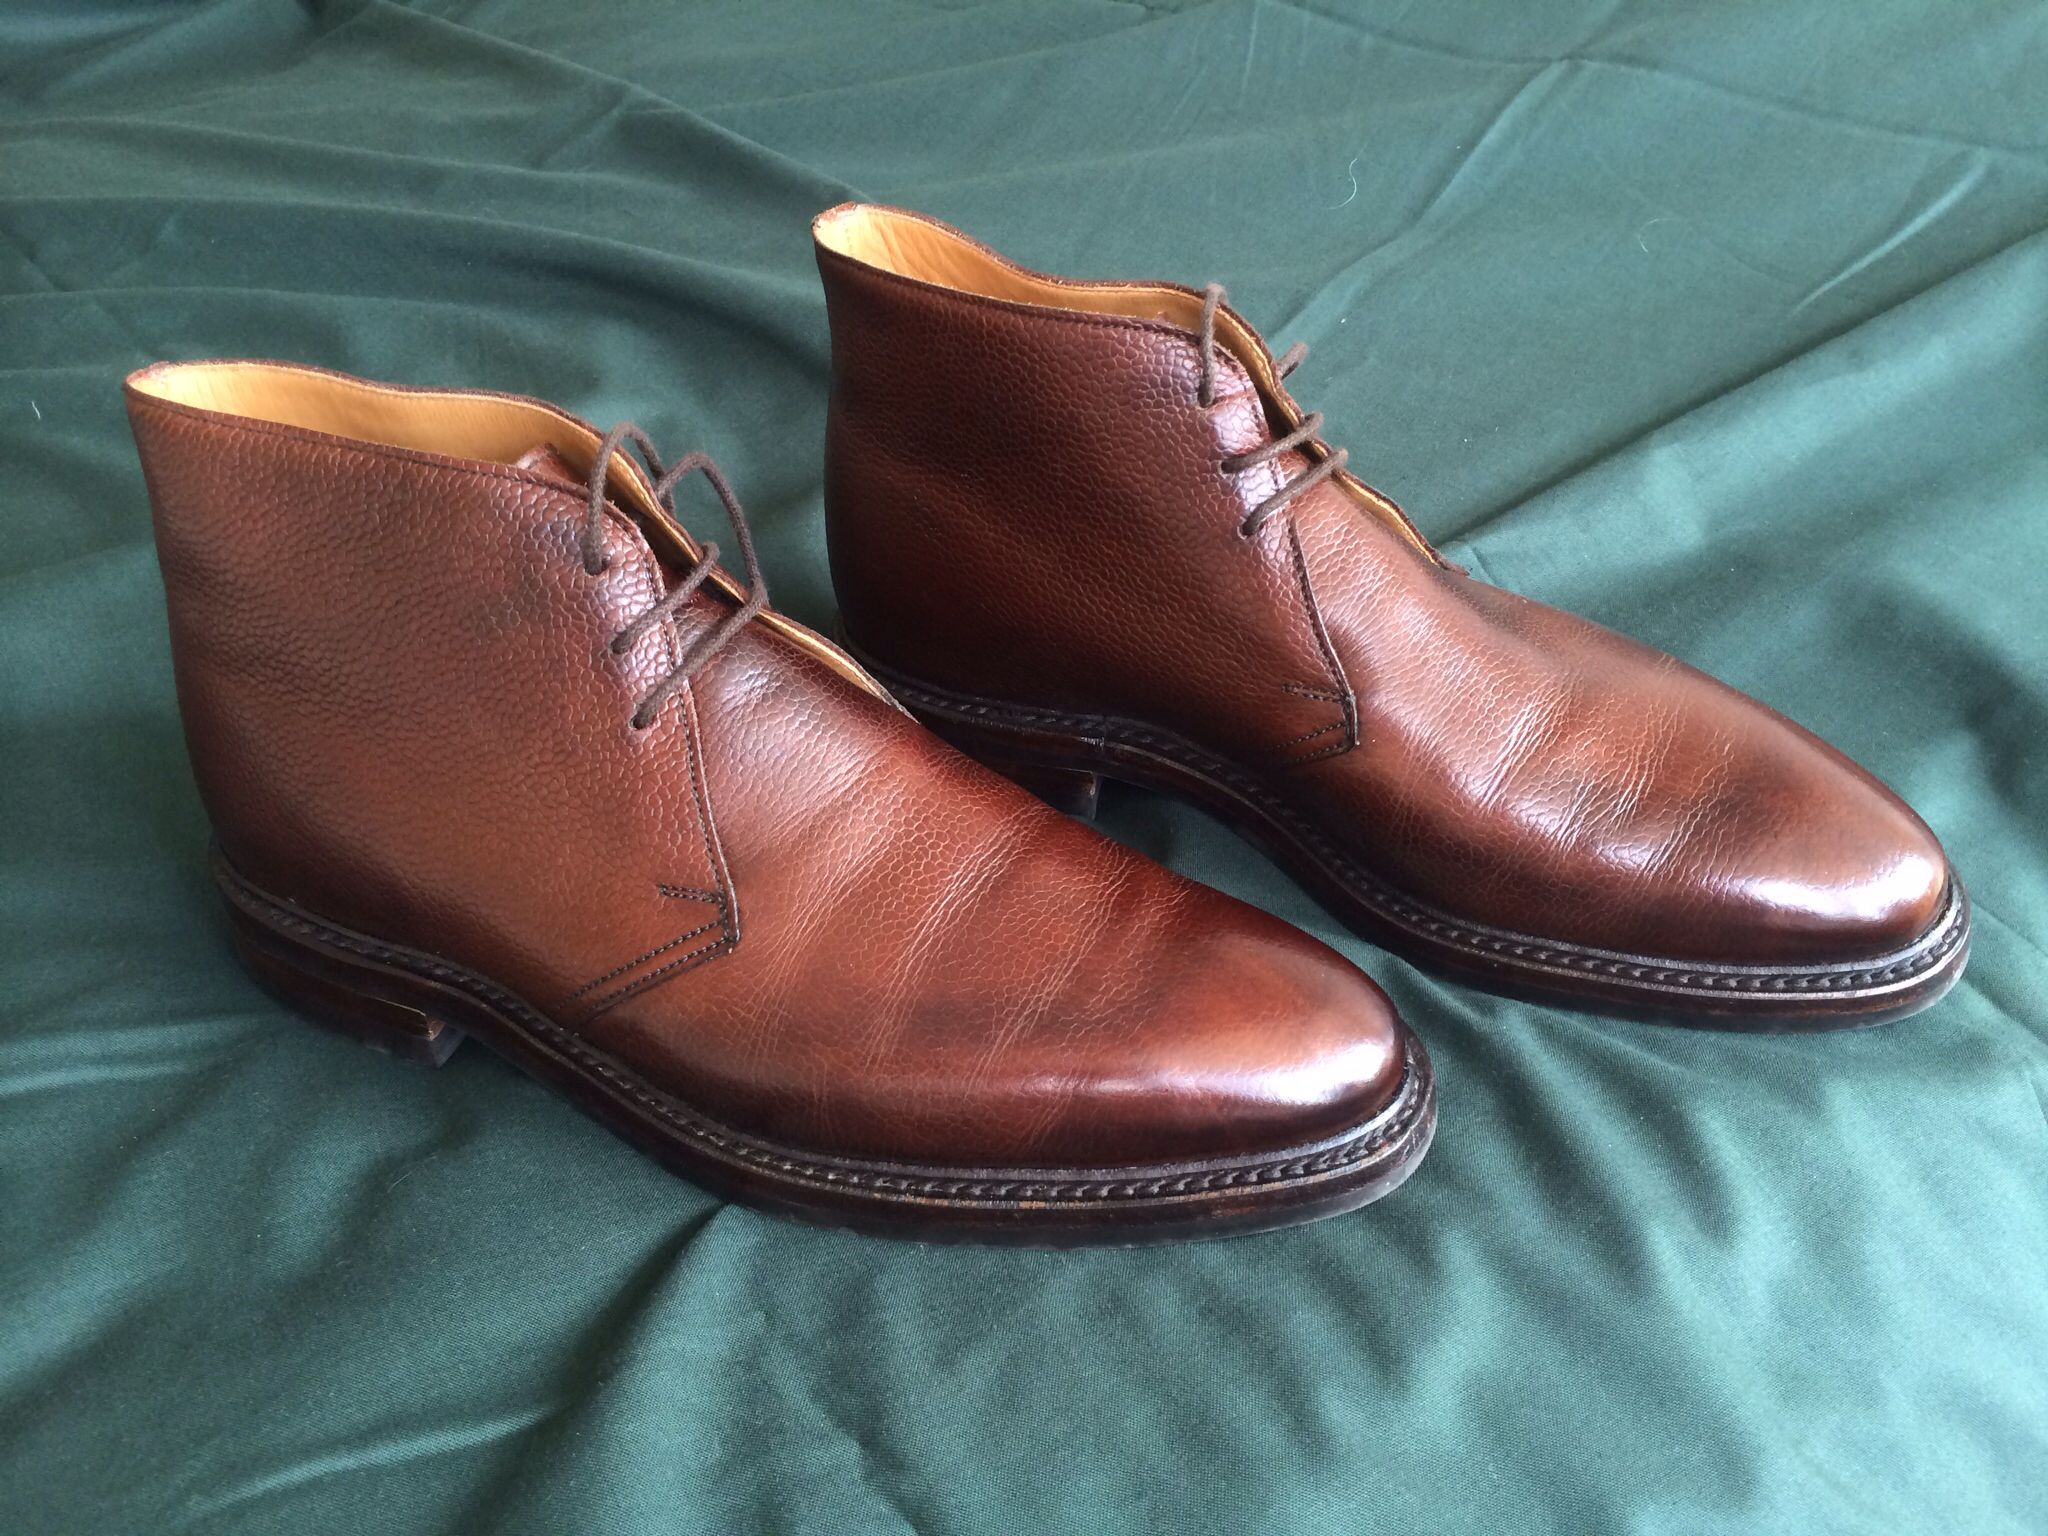 Crockett and Jones Brecon Brown country grain boots an ankle height derby  boot with plain front